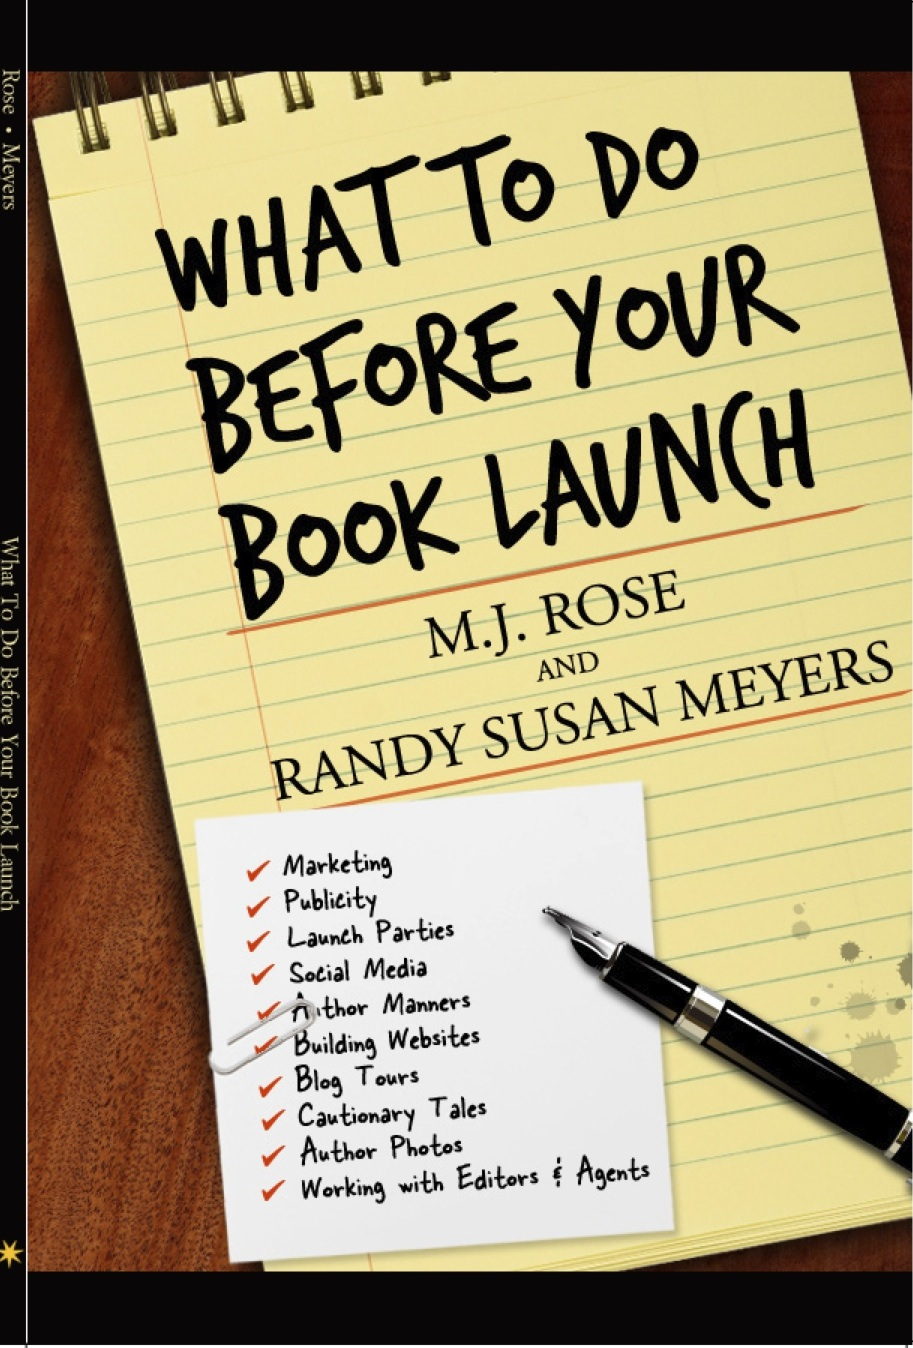 what to do before your book launch: a guidebook | randy susan meyers